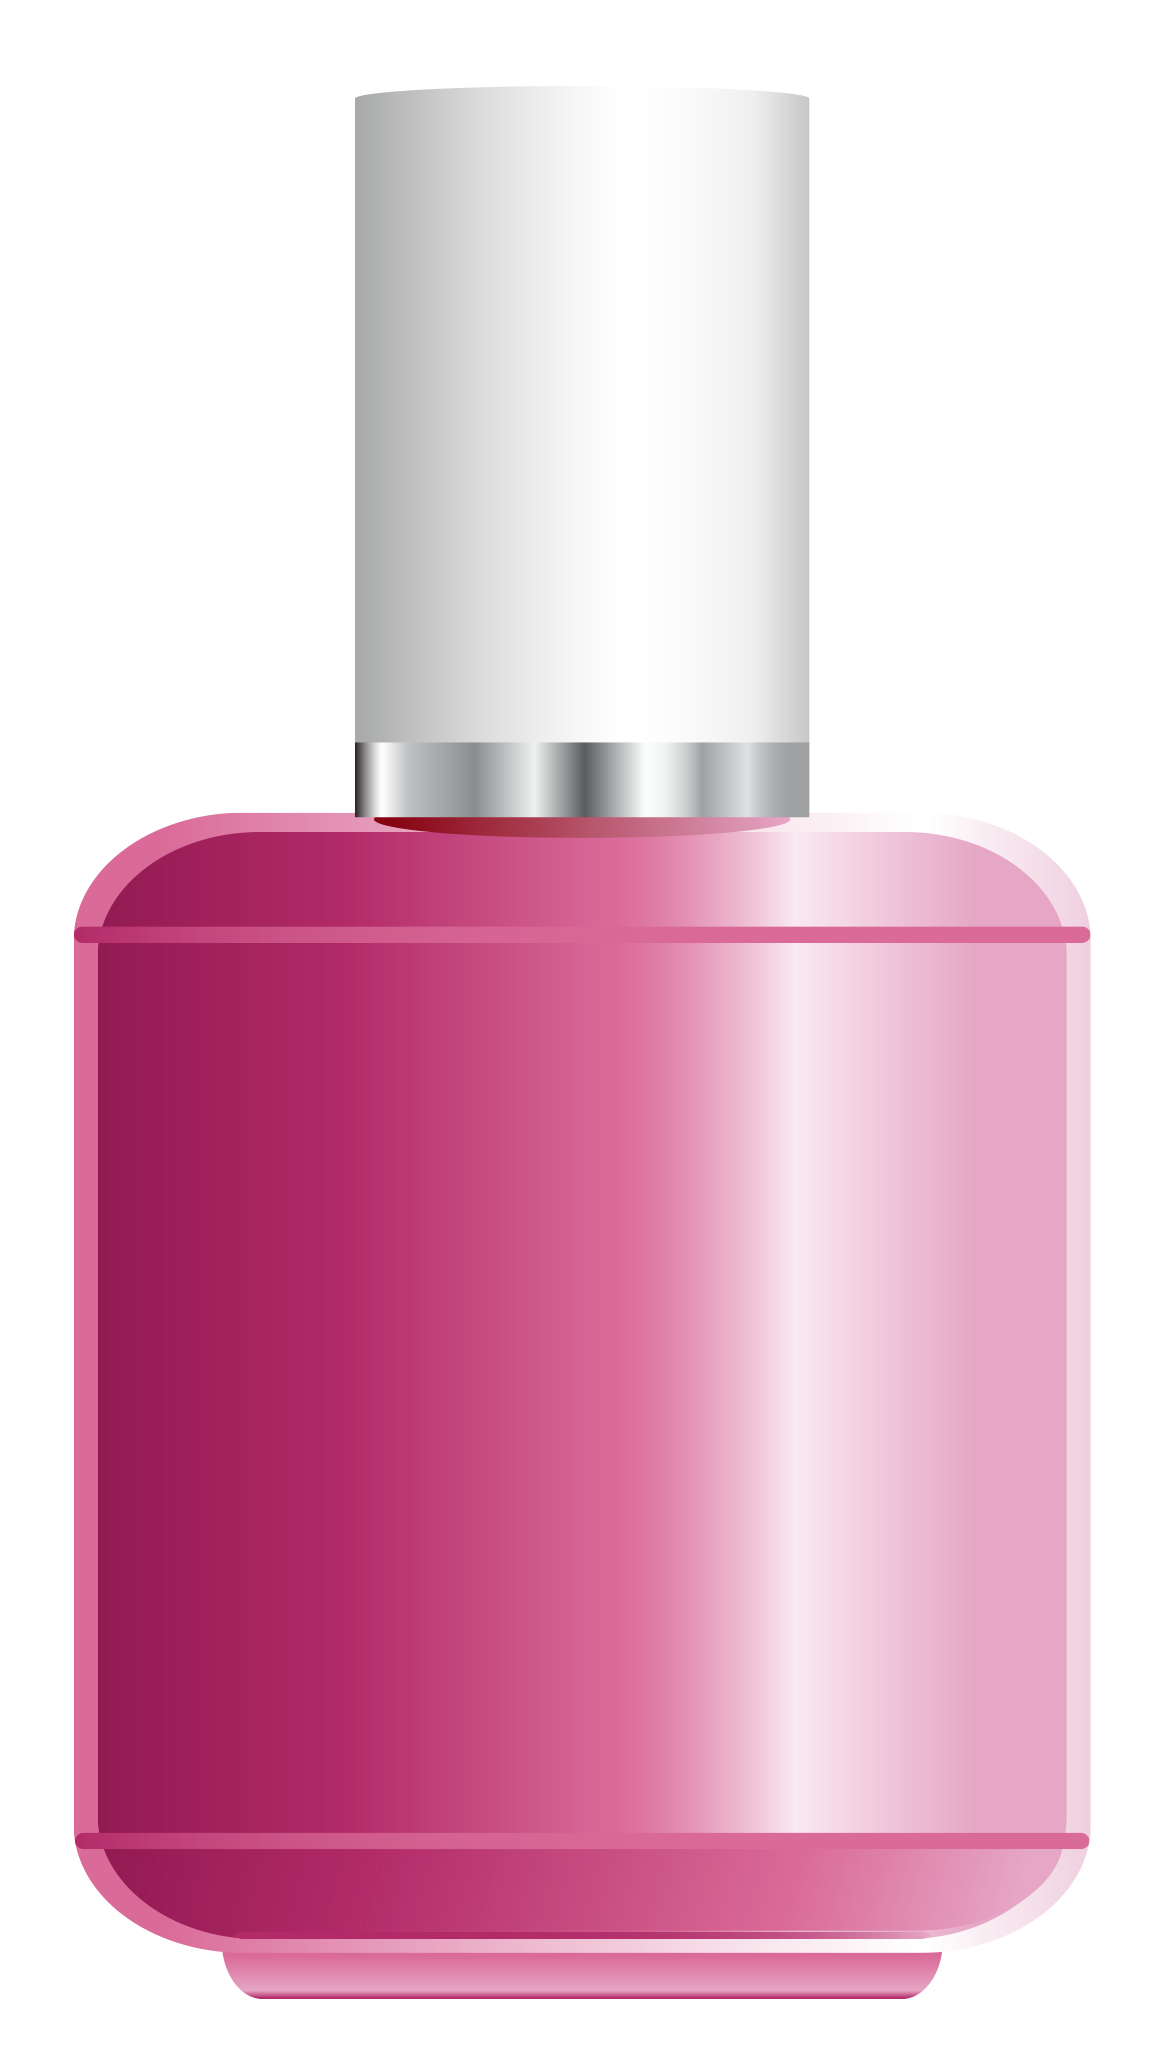 Pink Nail Polish PNG Clipart Picture.